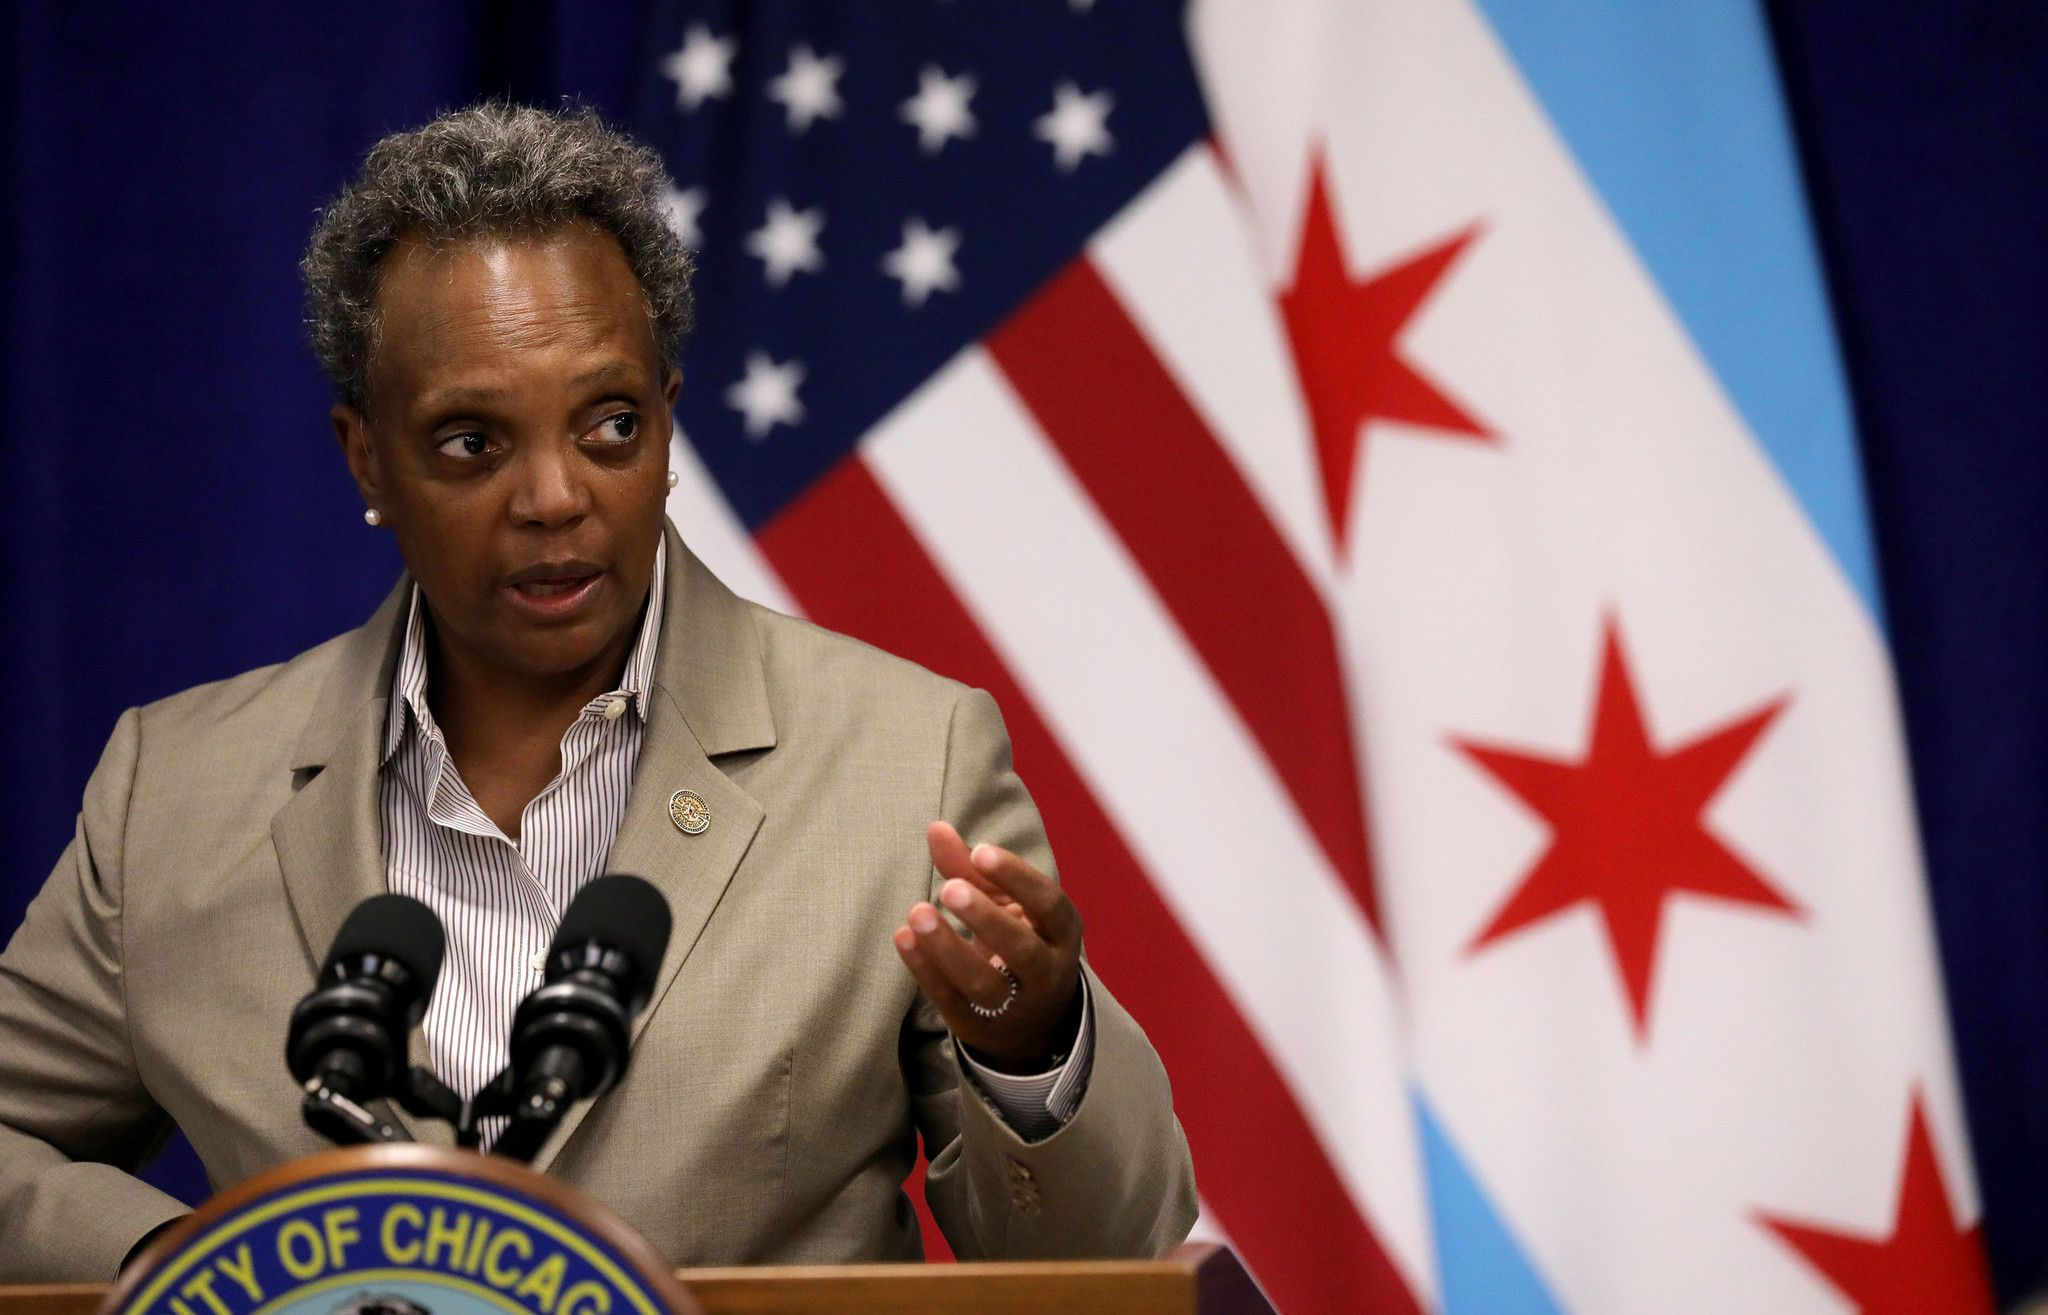 Chicago's history of systemic racism blamed for nearly 9-year life expectancy gap between Black and white residents, according to new report